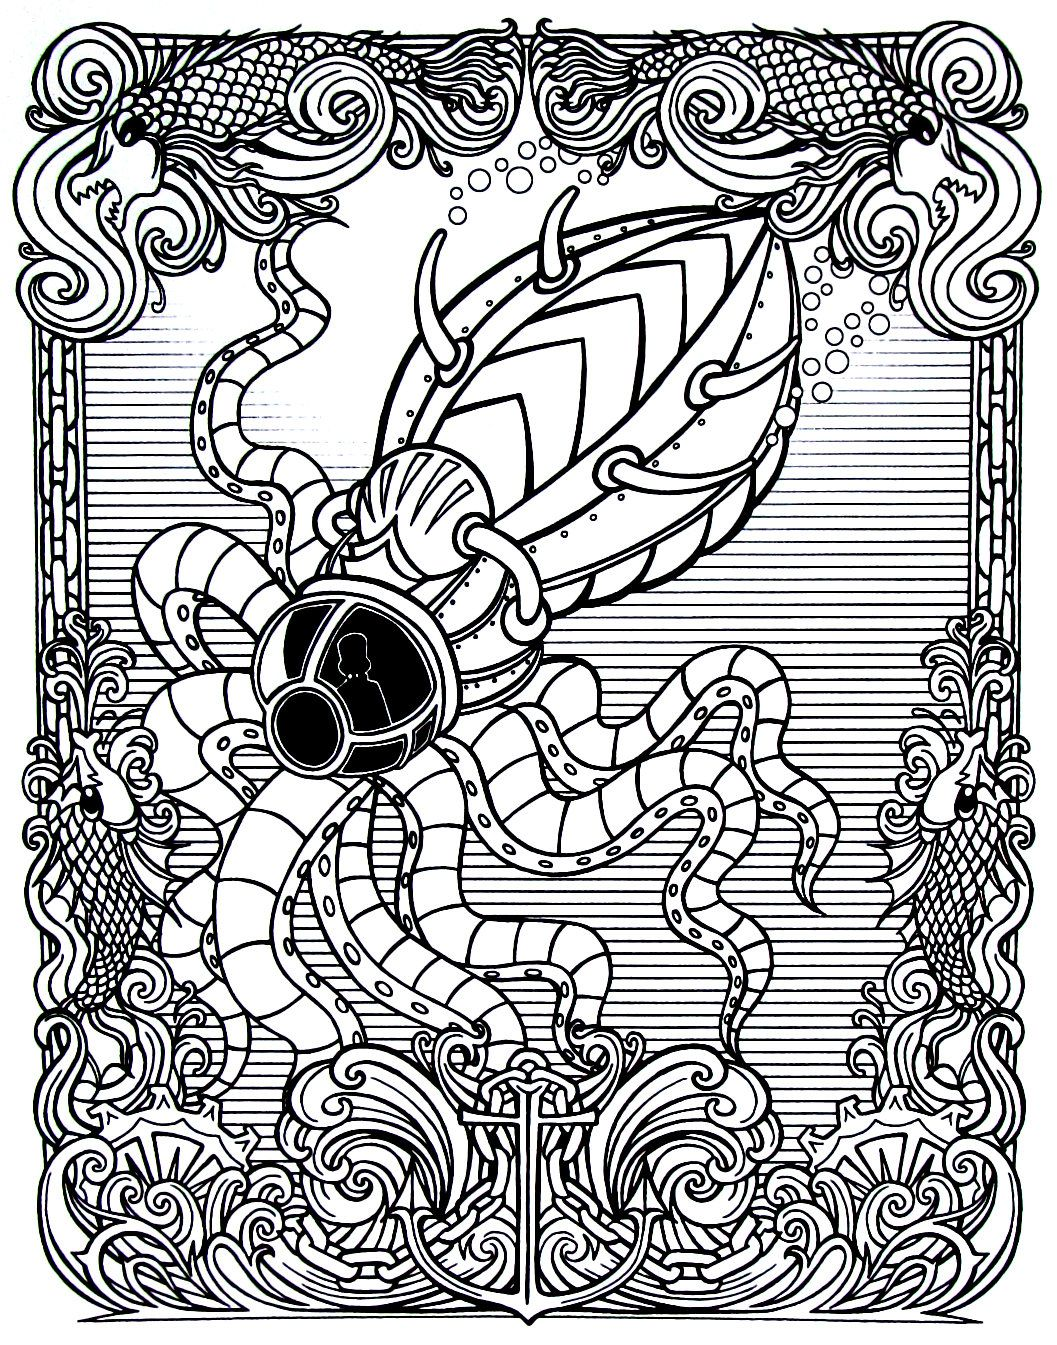 Steampunk Underwater Octopus Submarine Printable Coloring Book Page